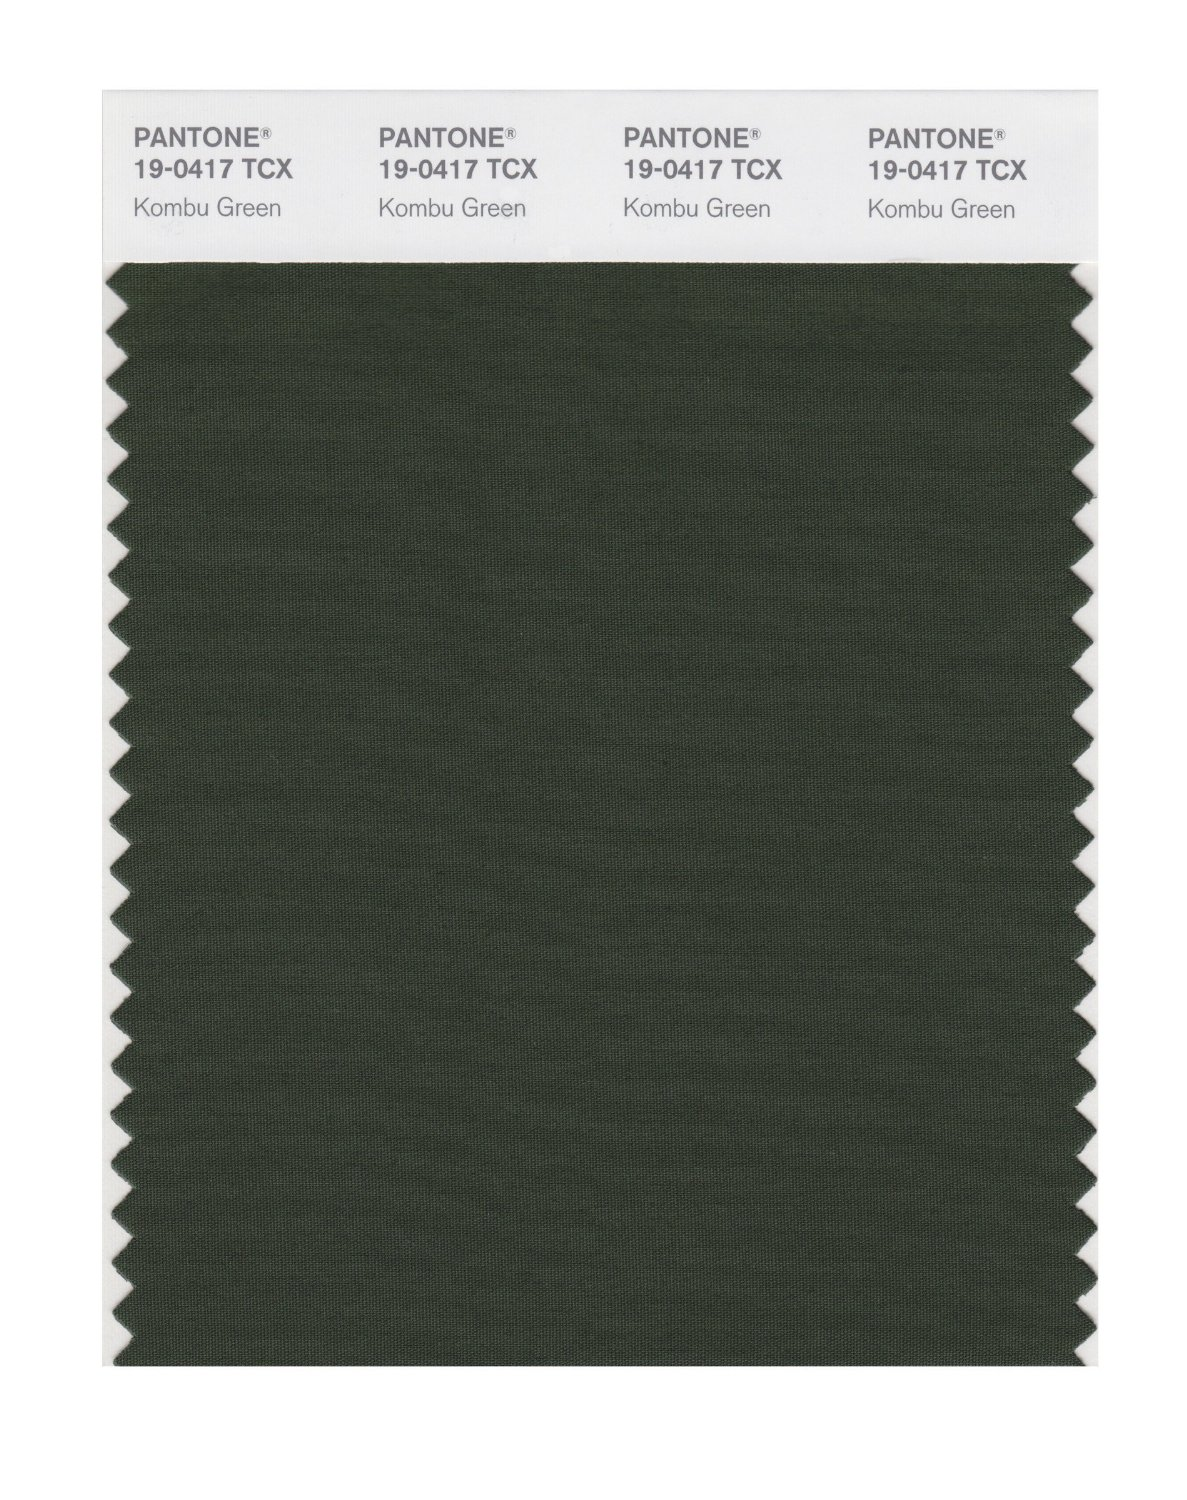 Pantone Smart Swatch 19-0417 Kombu Green